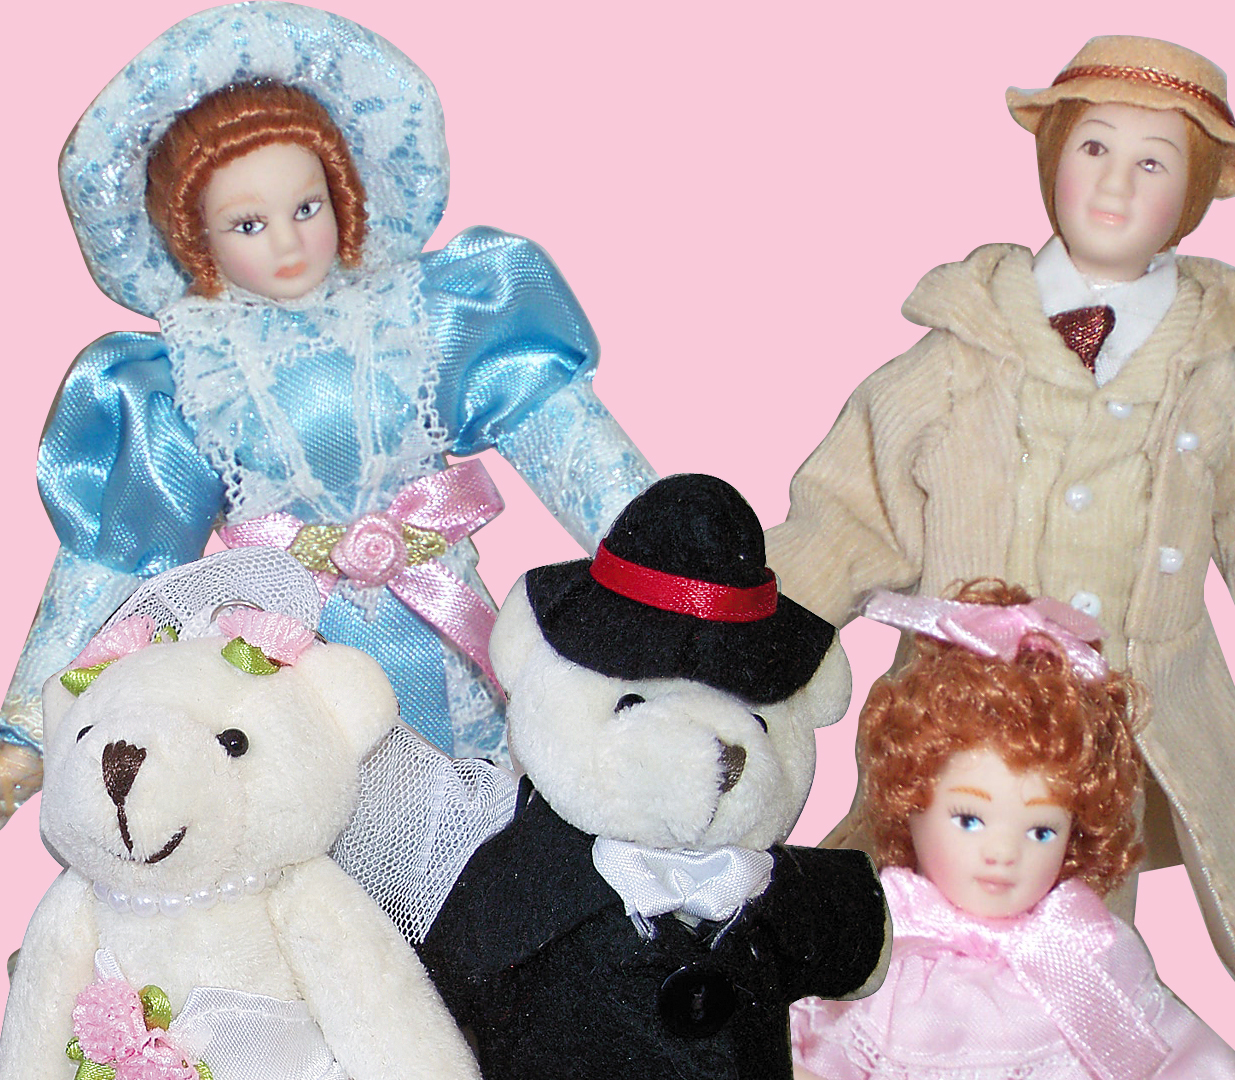 Readymade Dolls